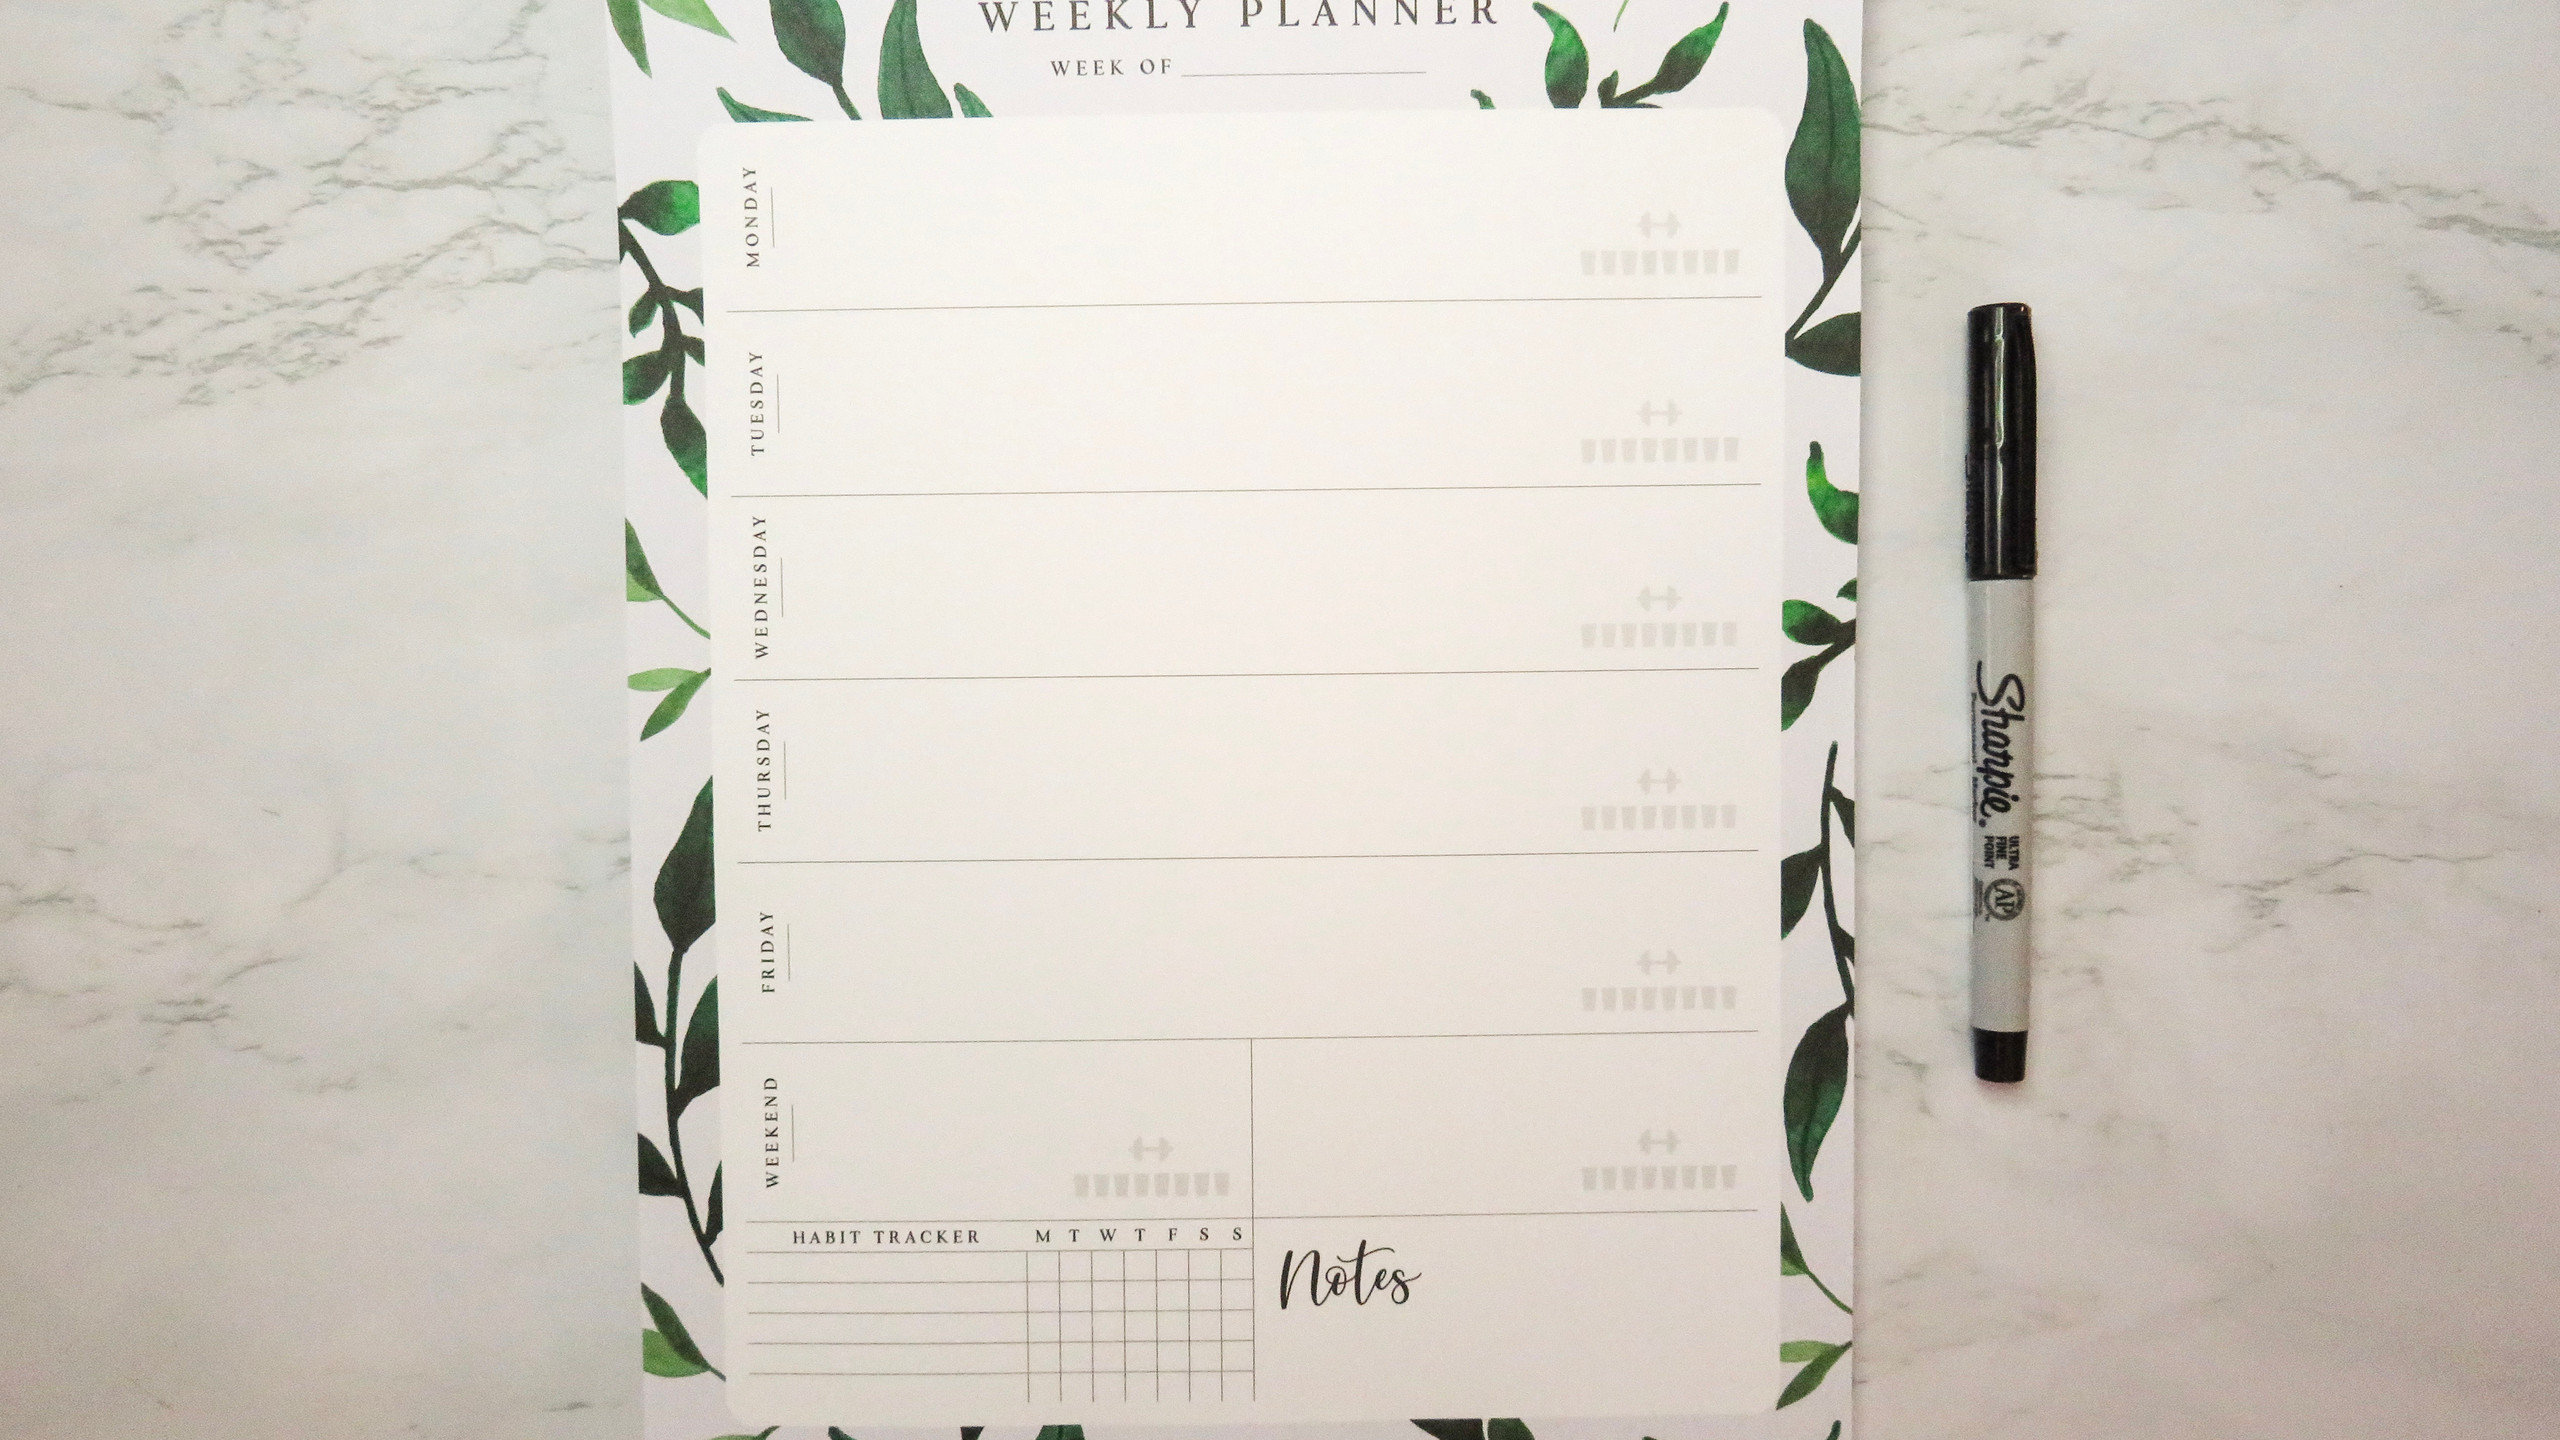 Bliss Collections Weekly Planner Pad with a greenery design